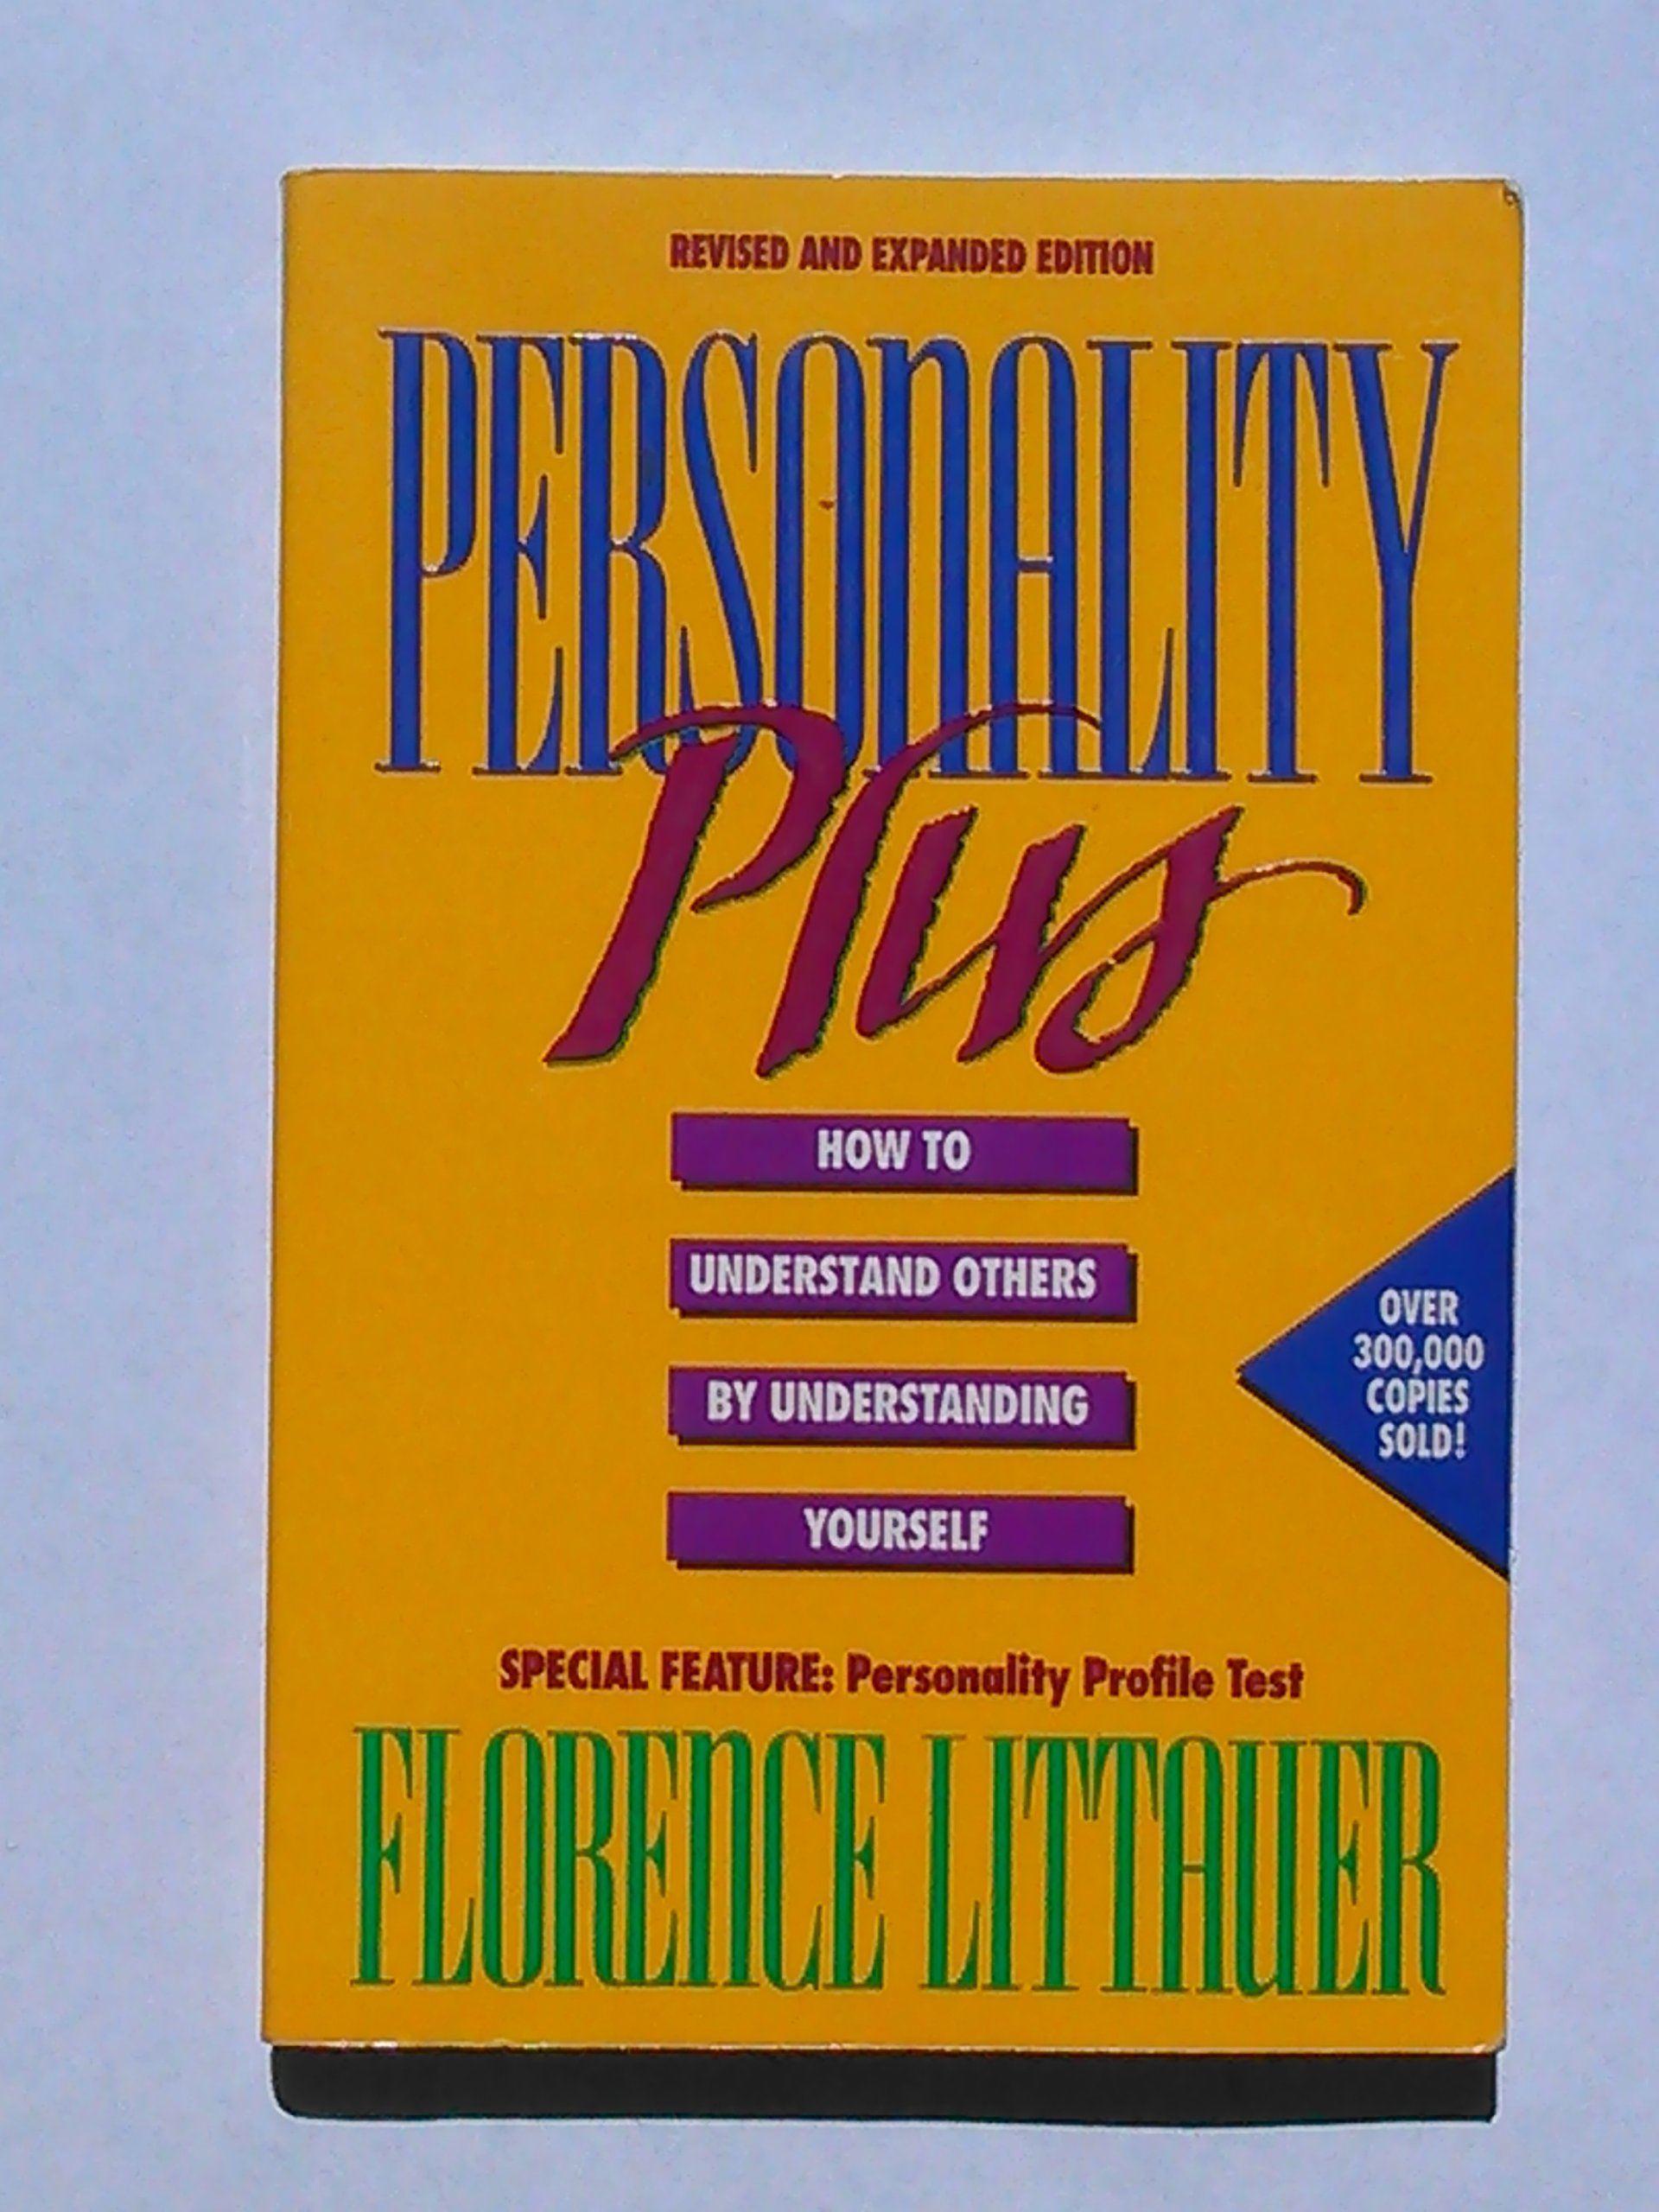 Personality Plus: How To Understand Others by Understanding Yourself, Revised, Expanded Edition PDF